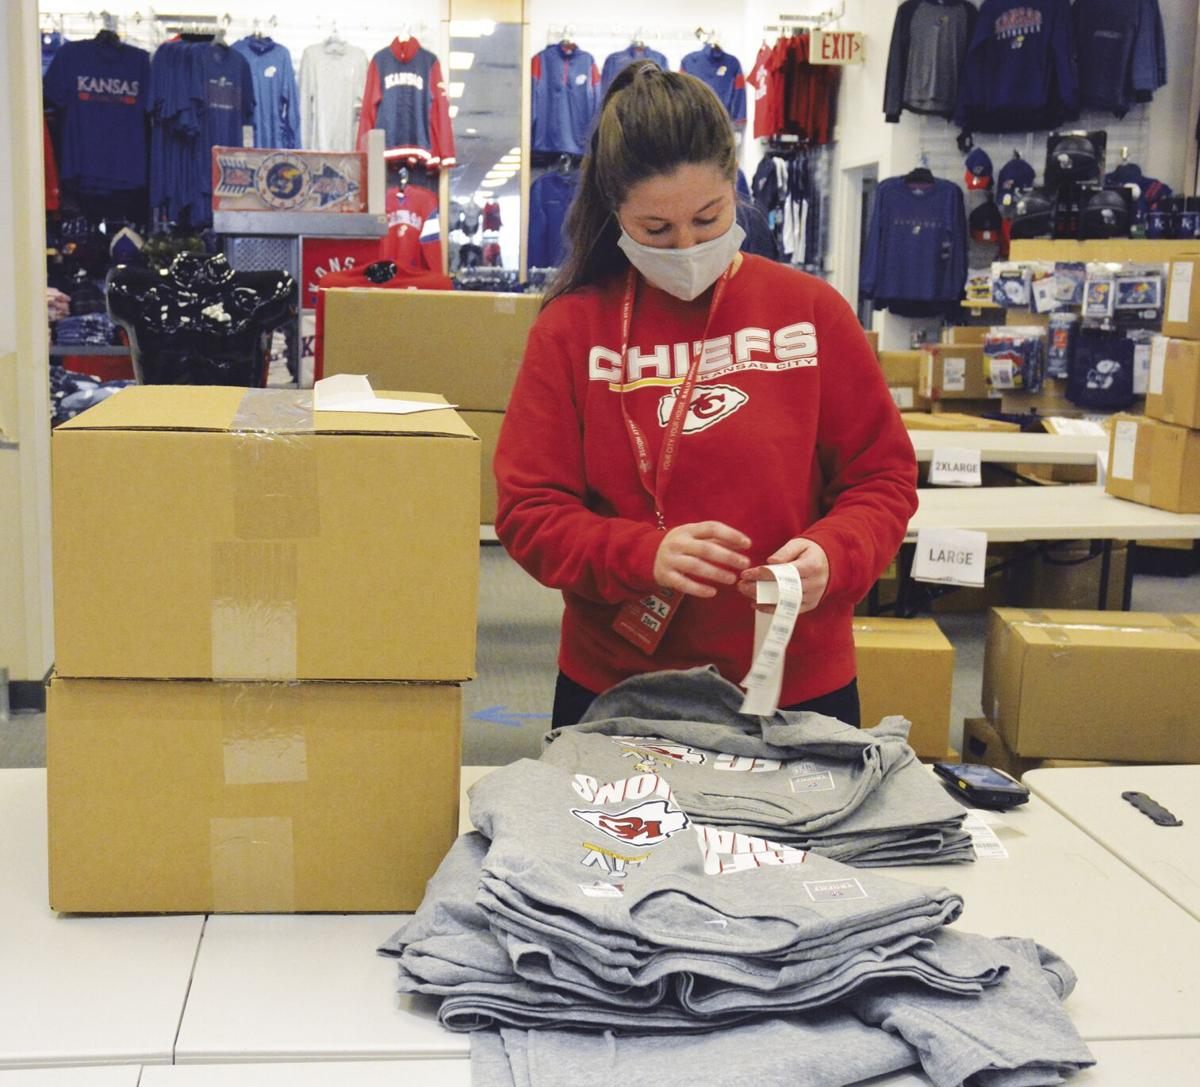 Merch flying off Northland store shelves as Chiefs are Tampa bound